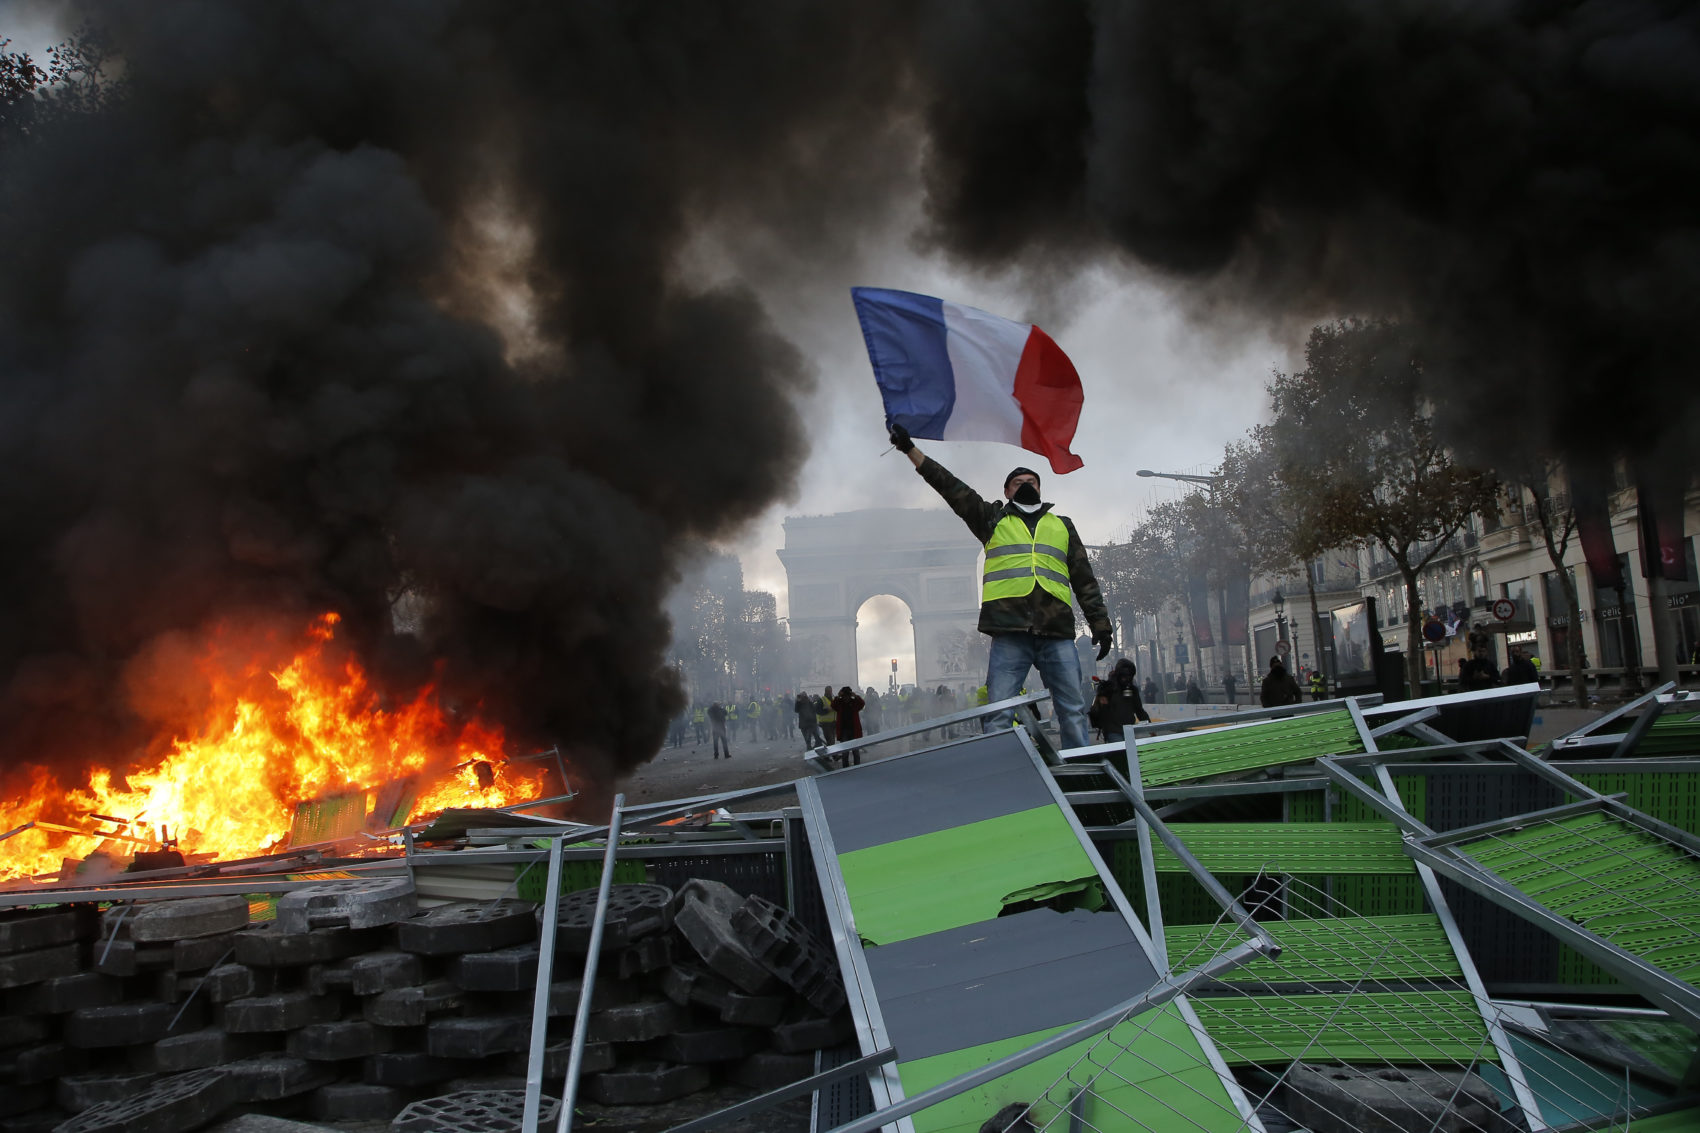 A demonstrator waves the French flag onto a burning barricade on the Champs-Elysees avenue during a demonstration against the rising of the fuel taxes, Saturday, Nov. 24, 2018 in Paris. (Michel Euler/AP)